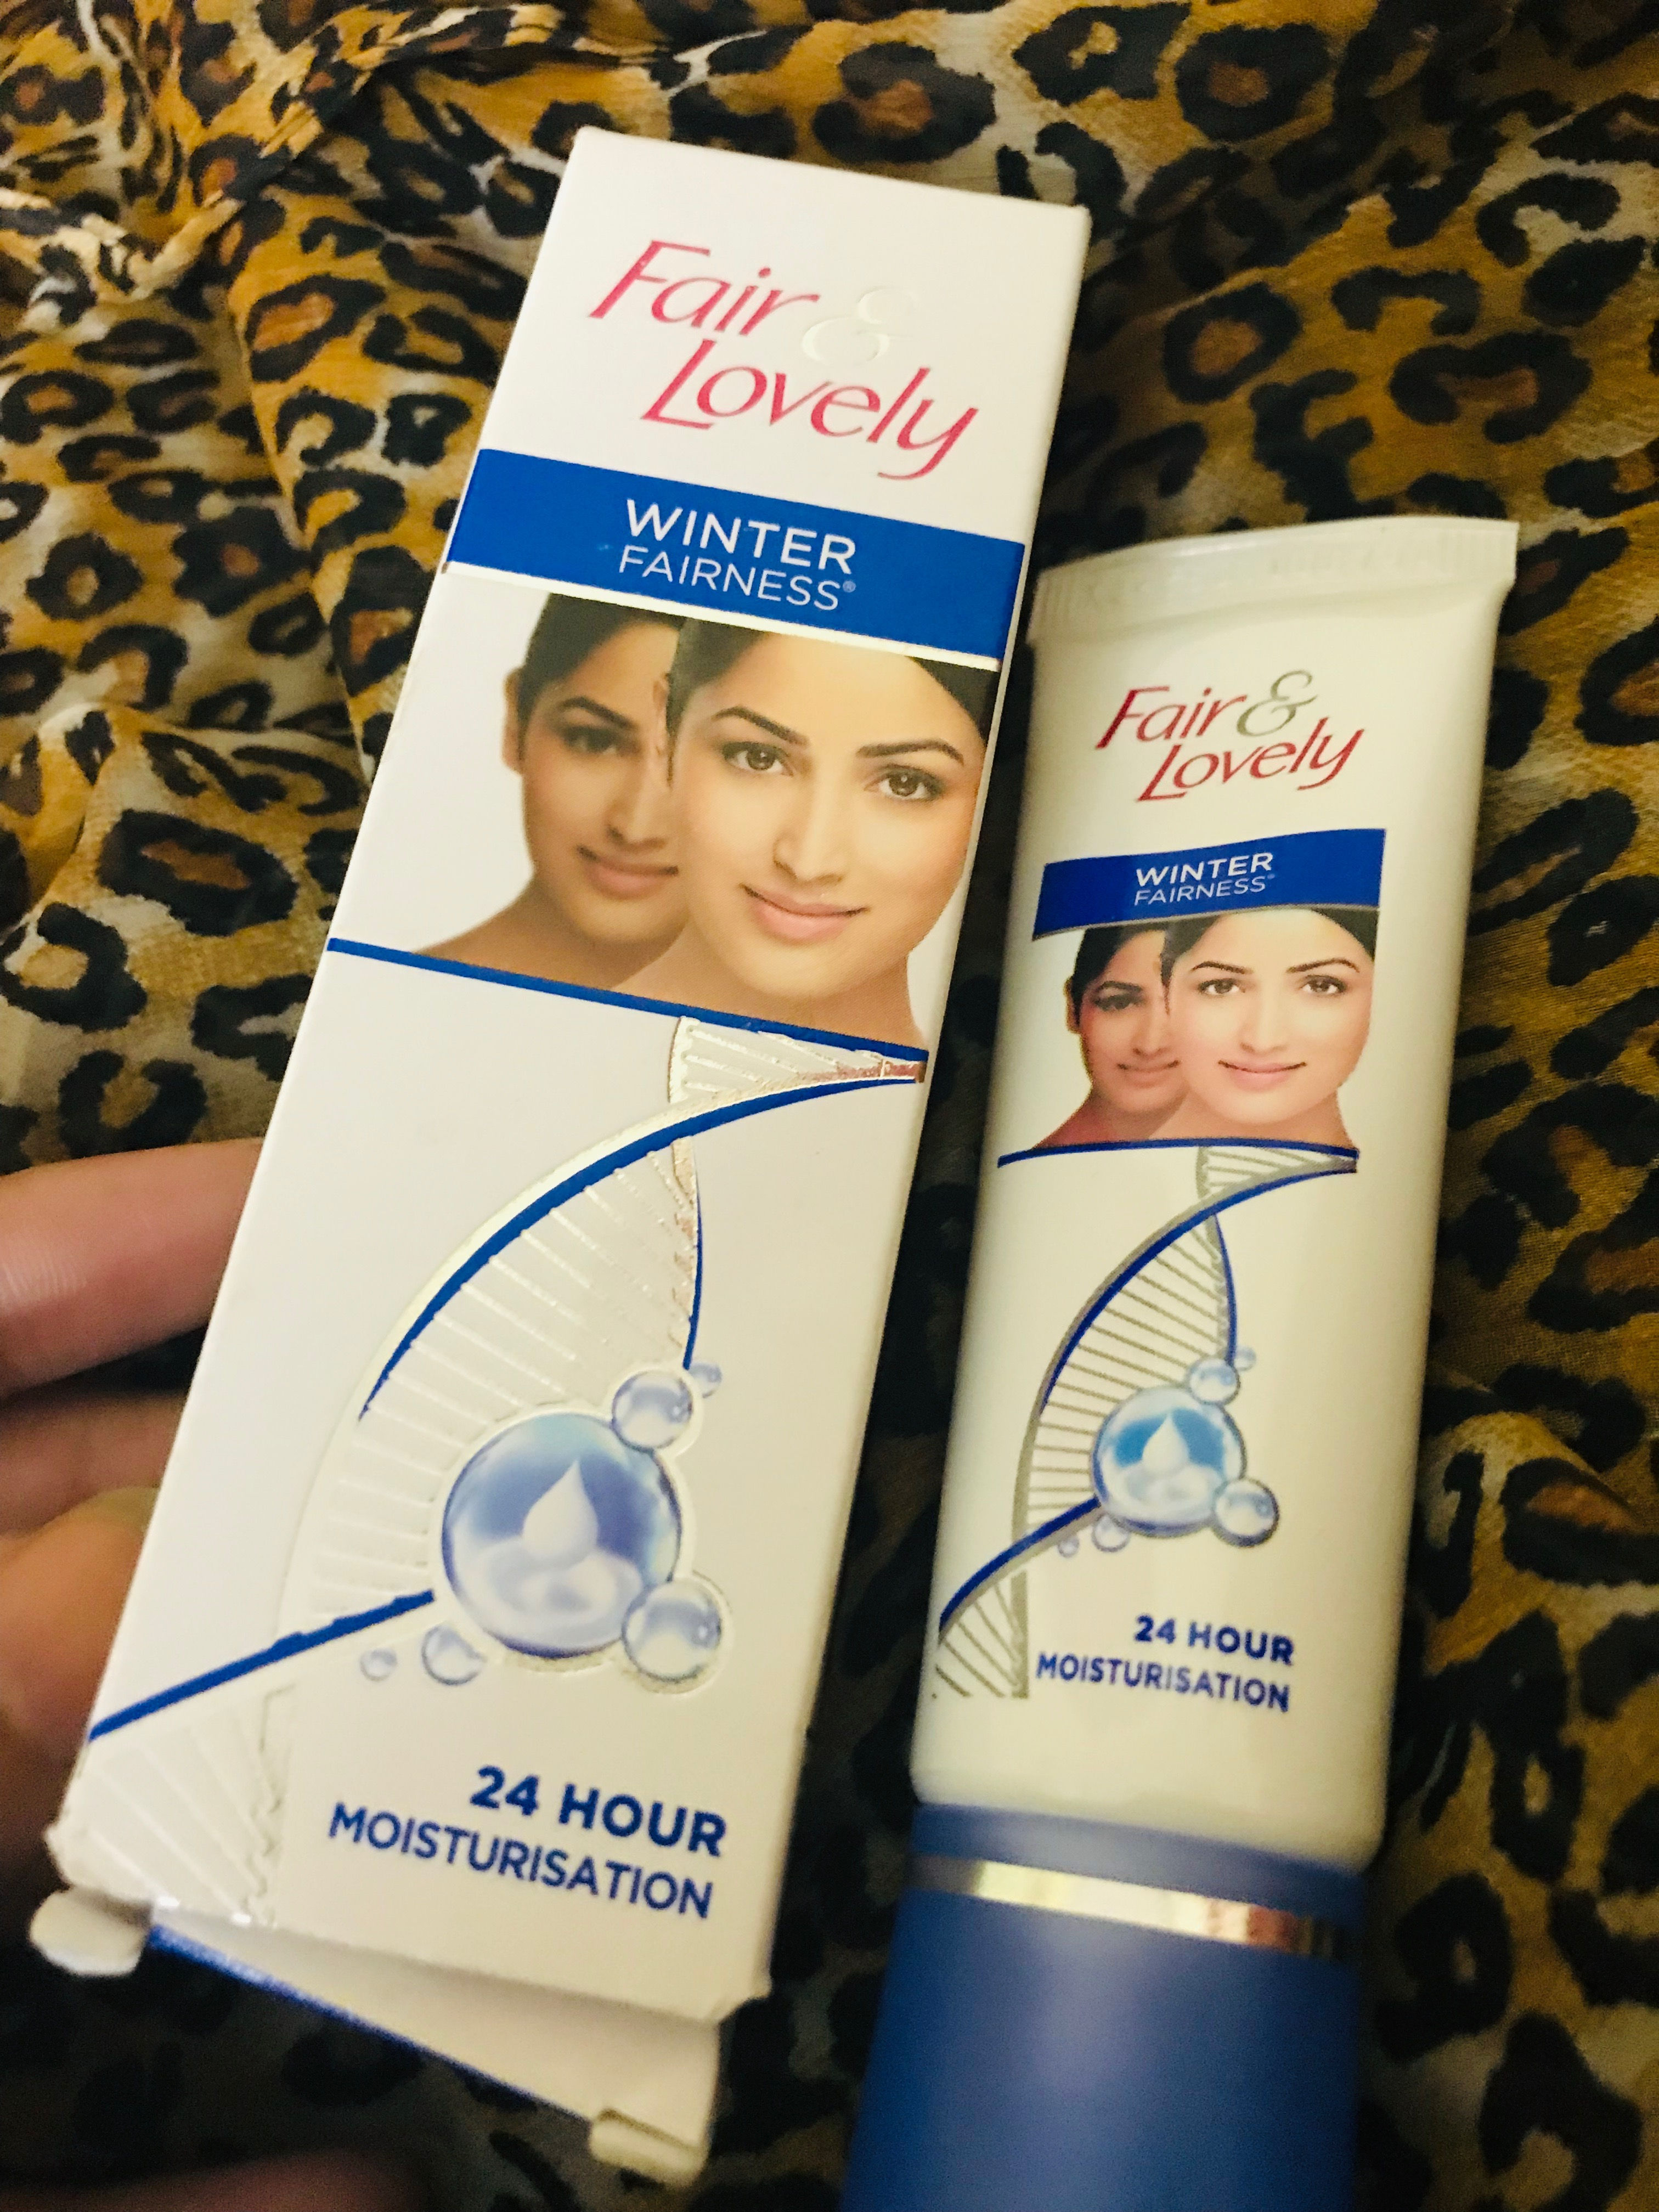 Fair & Lovely Winter Fairness Cream-Descent product not amazing-By ruchi_sharma-2